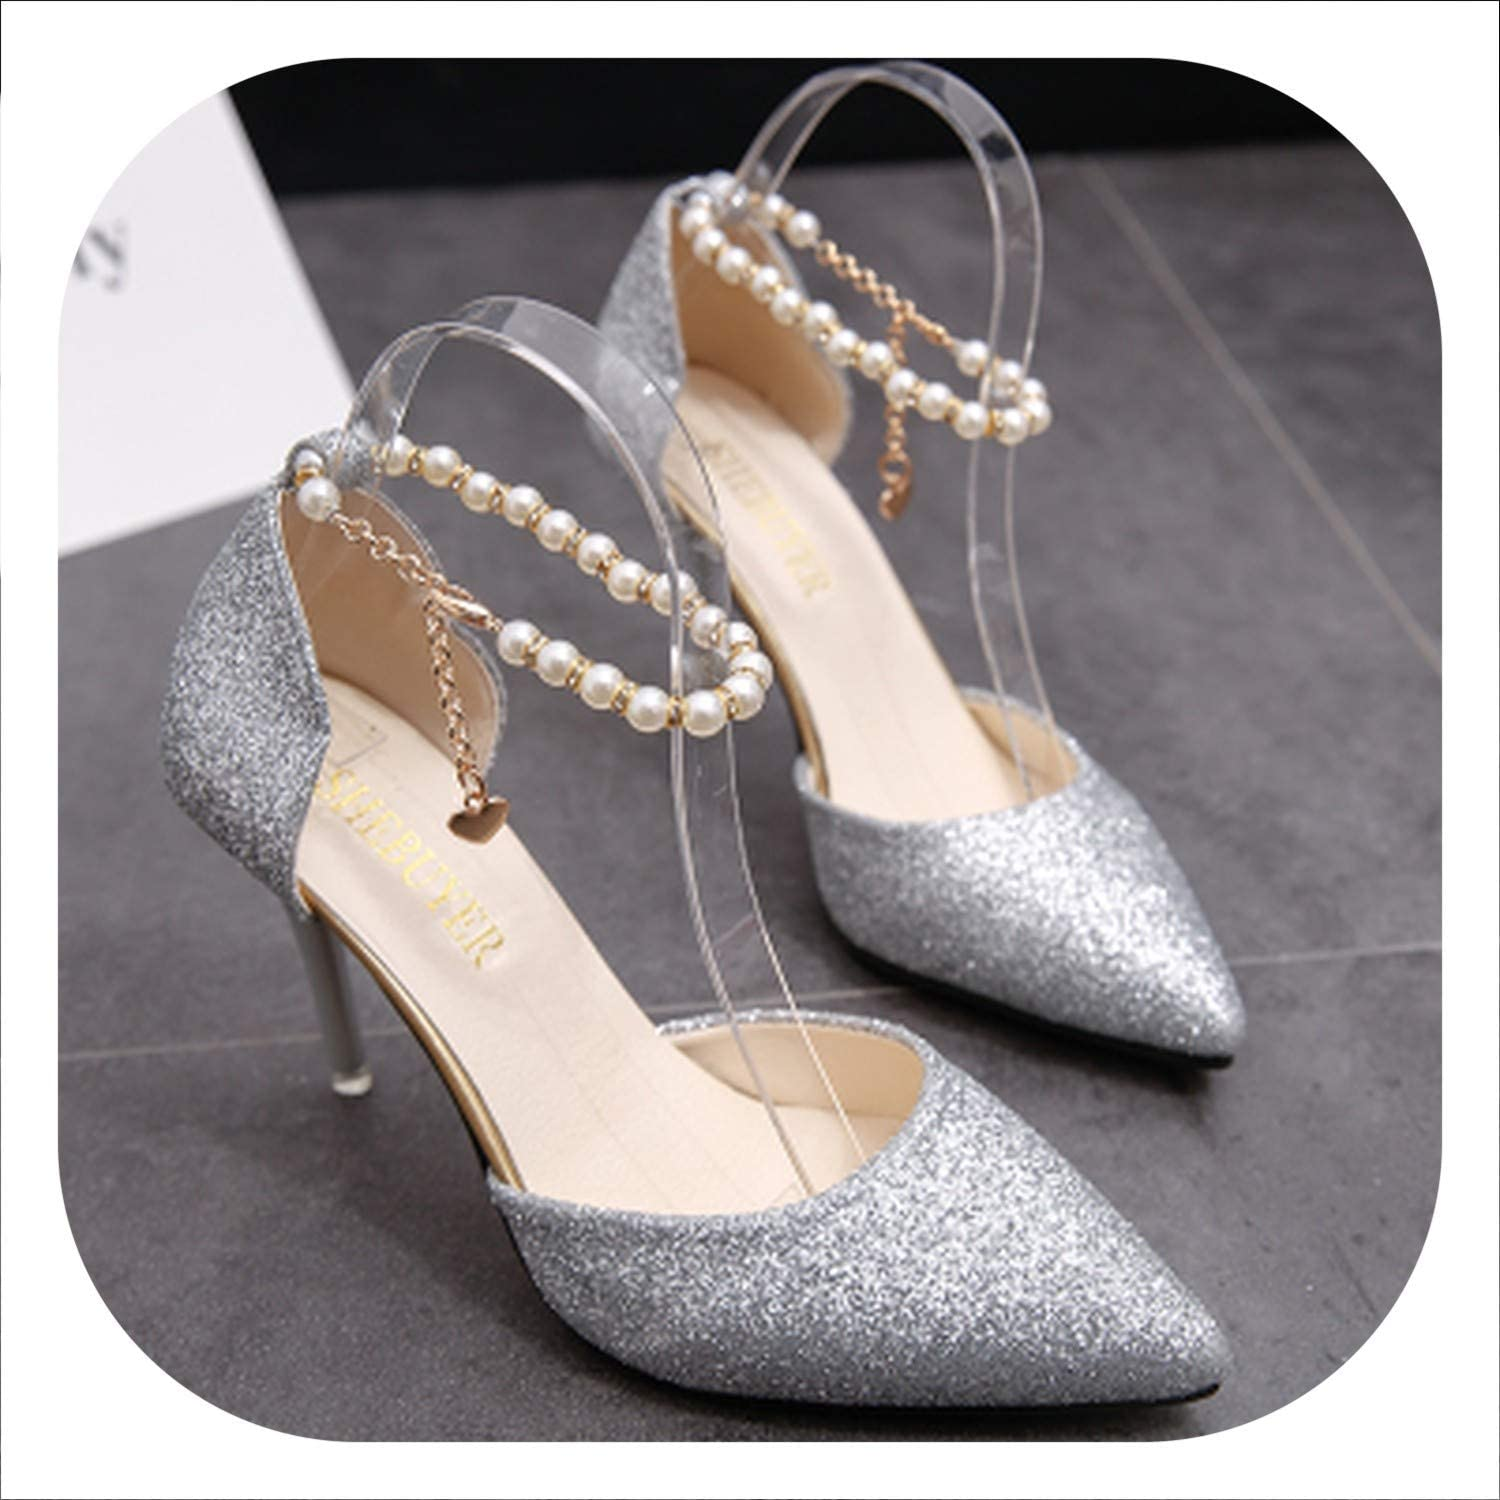 HANBINGPO 2019 Summer High-Heeled Sandals Female Beaded Pointed shoes with fine Tide shoes